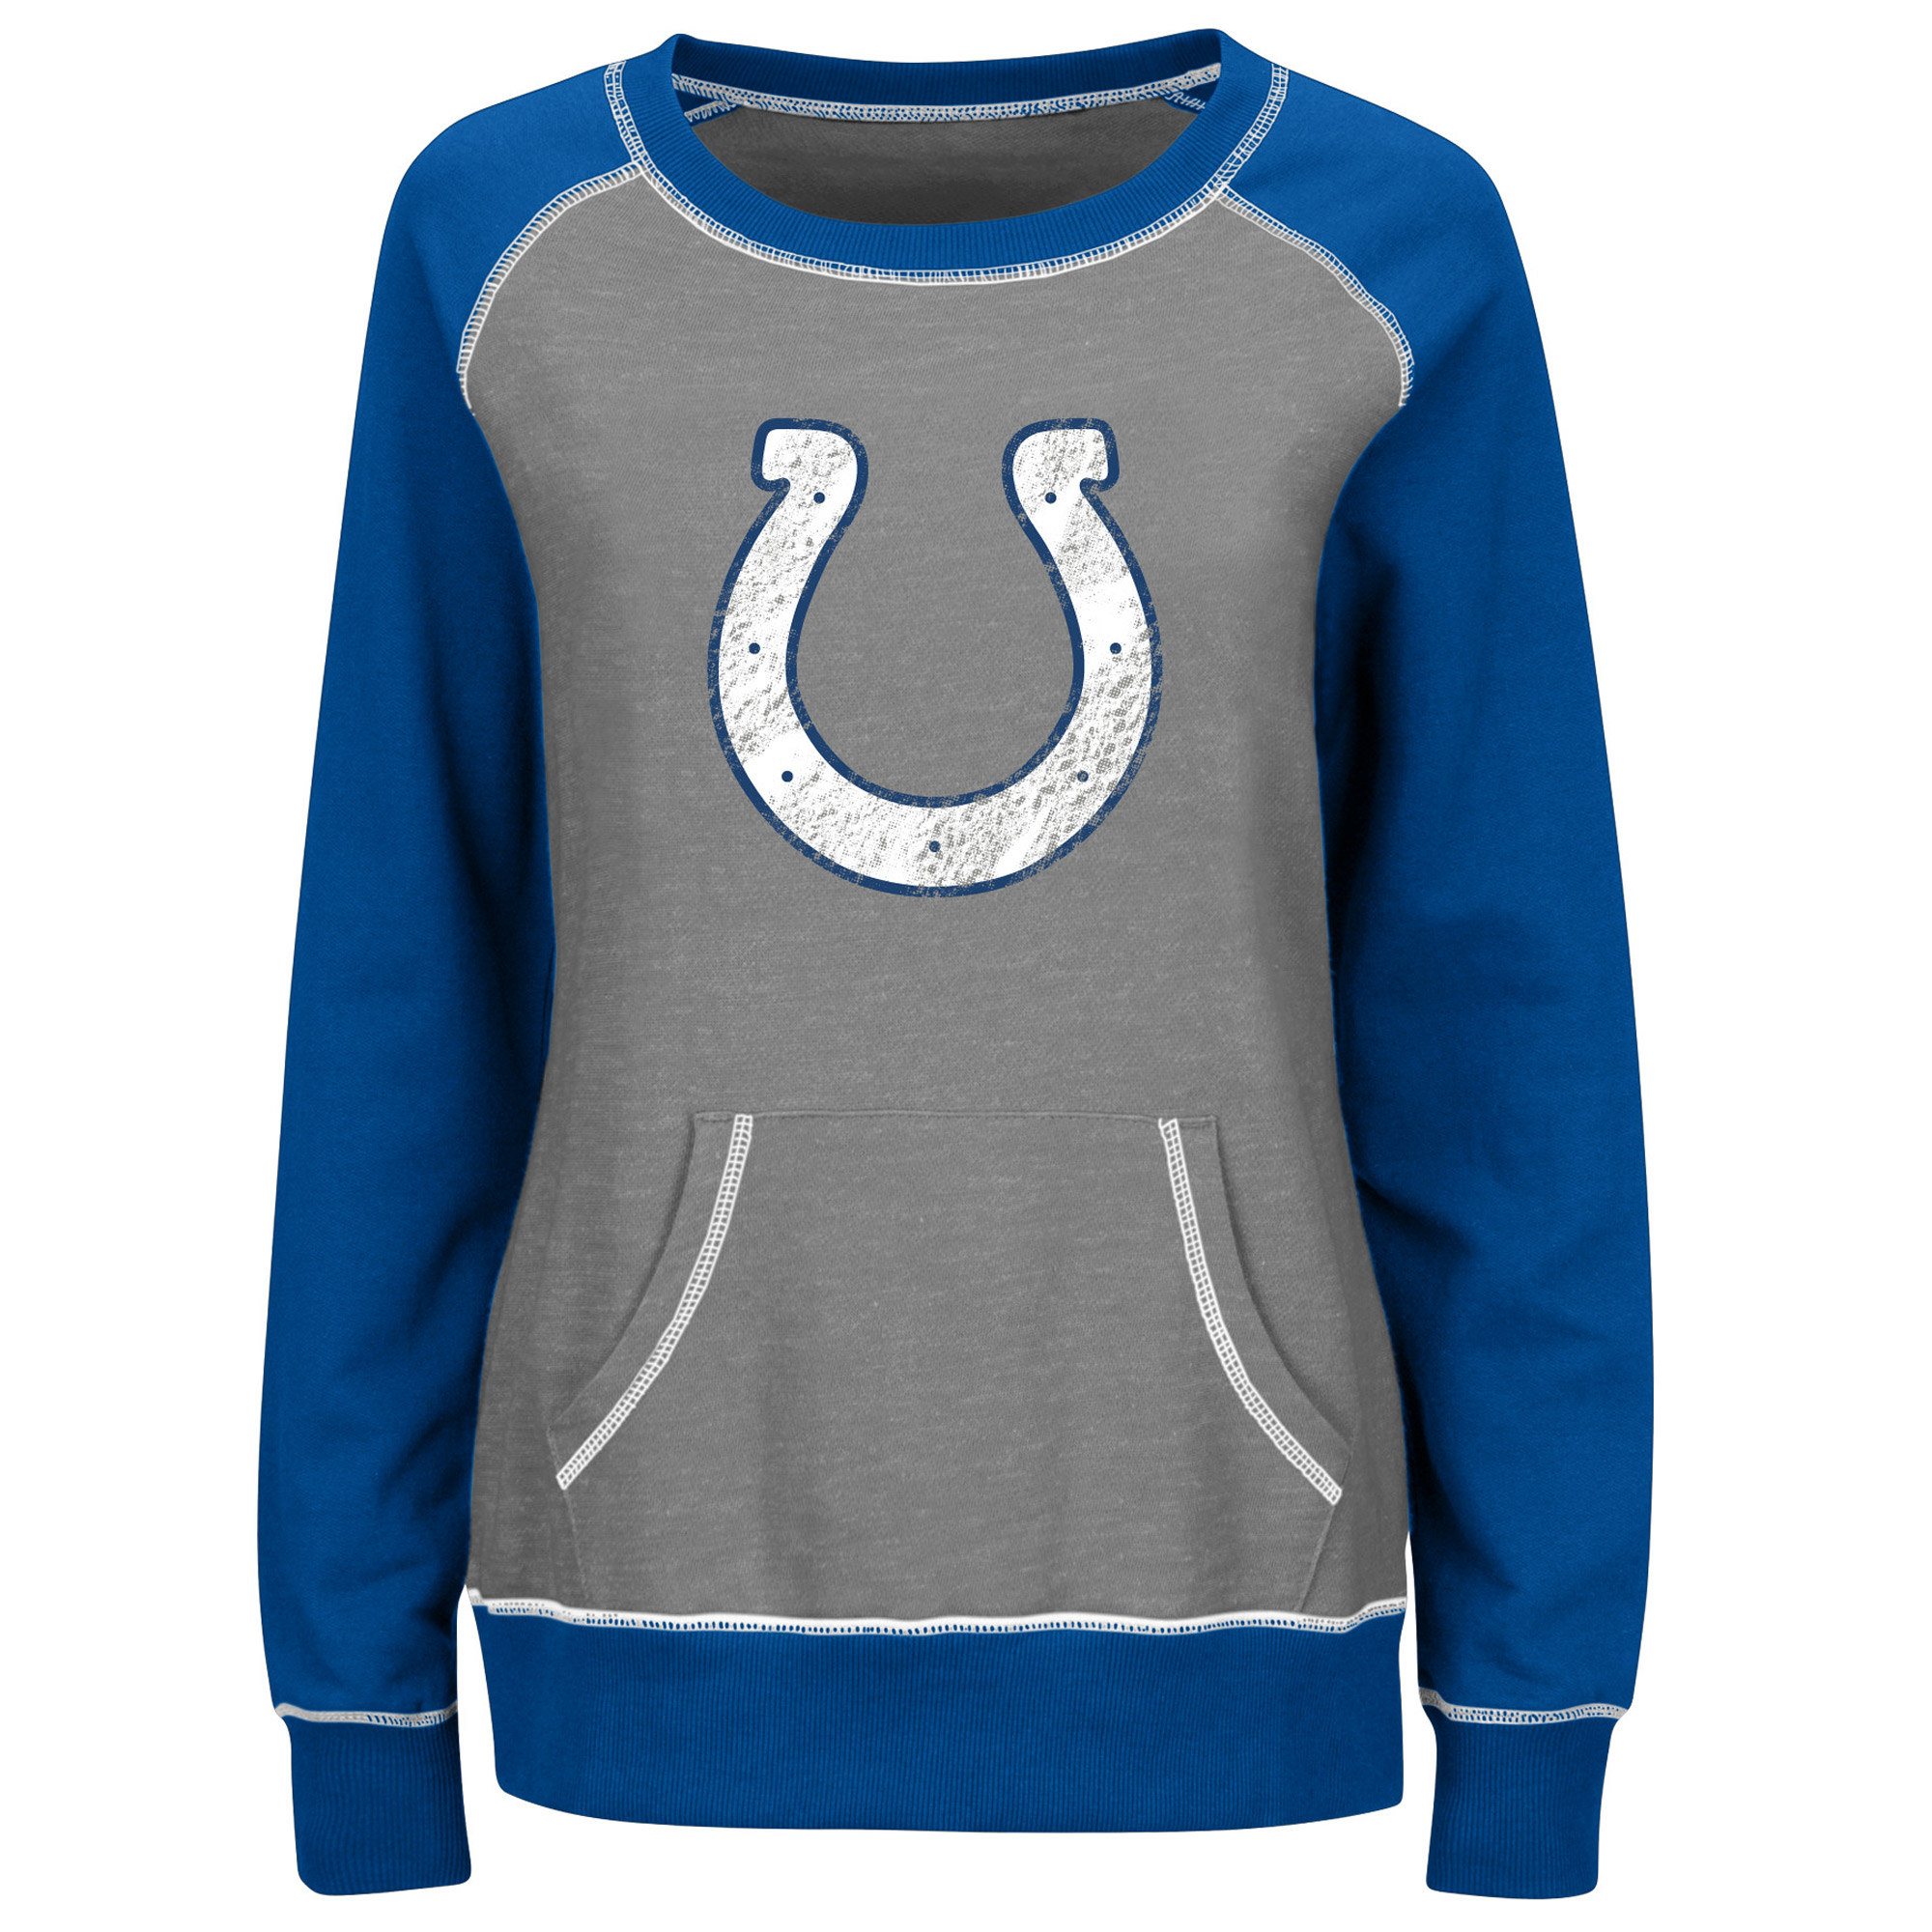 Indianapolis Colts Majestic Women's Overtime Queen Crew Neck Sweatshirt - Gray/Royal